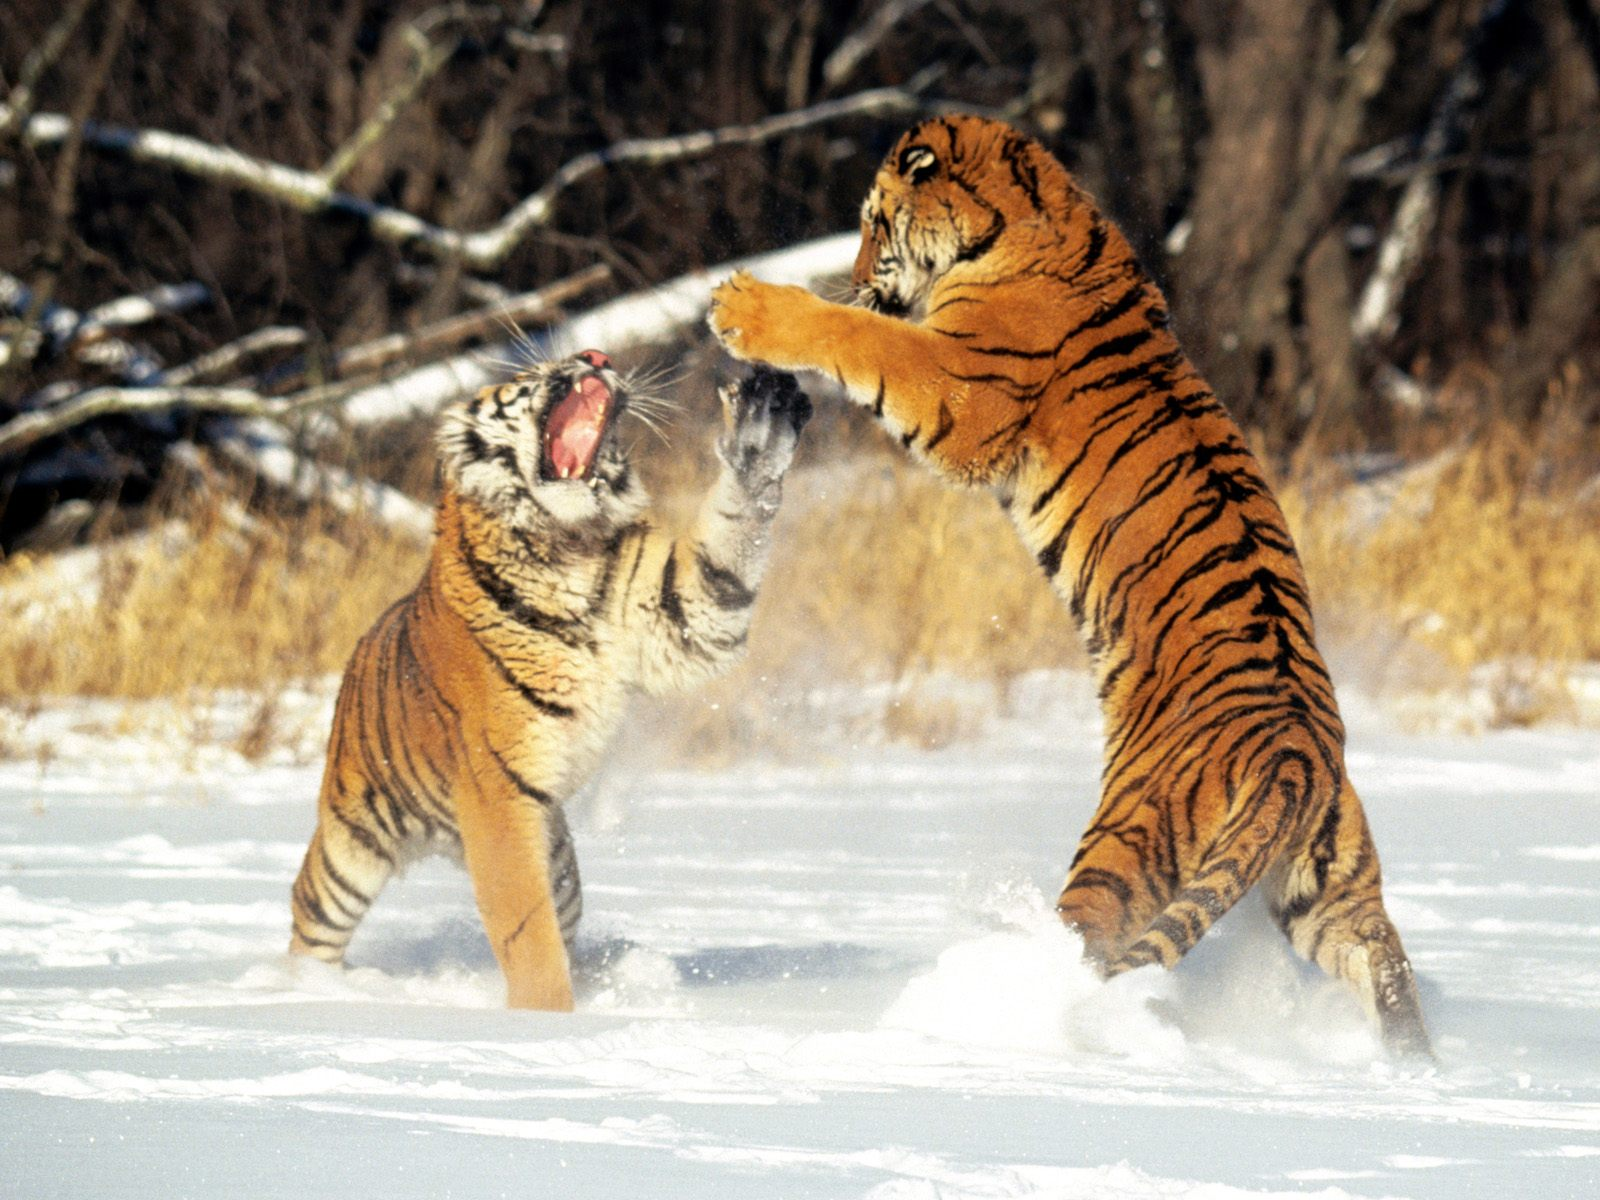 cat fight!;)